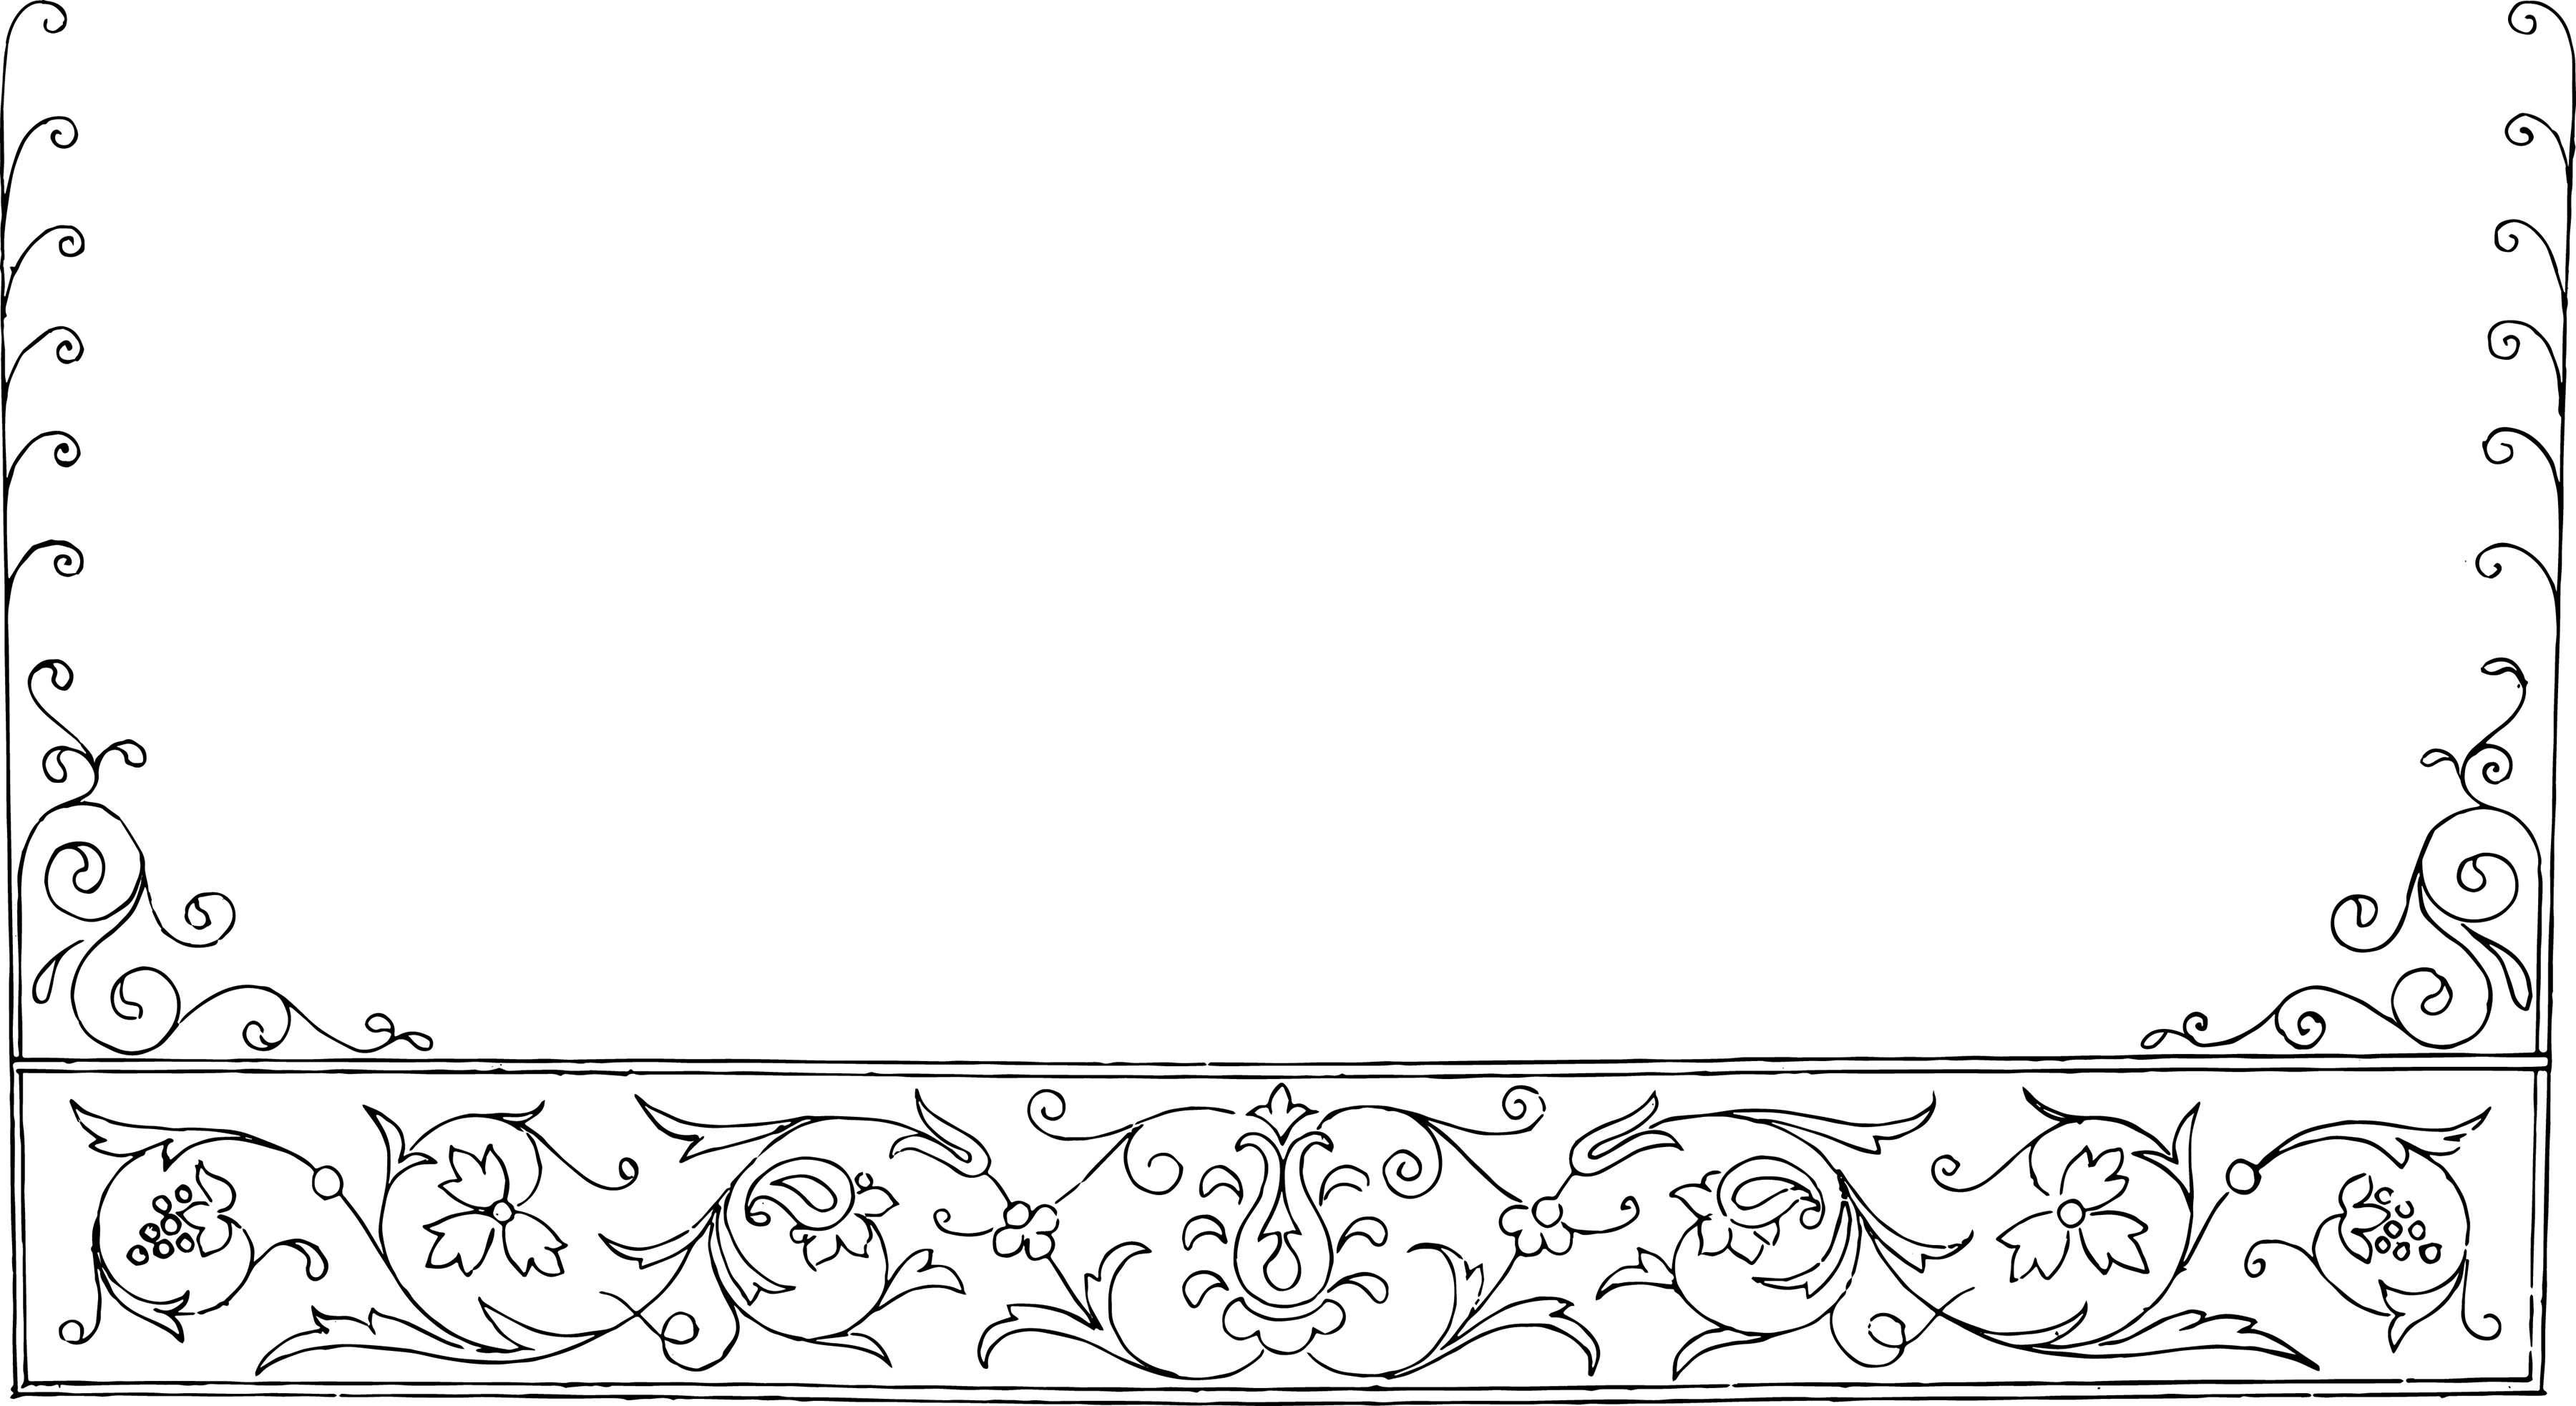 Floral border vector clipart. Free borders download clip